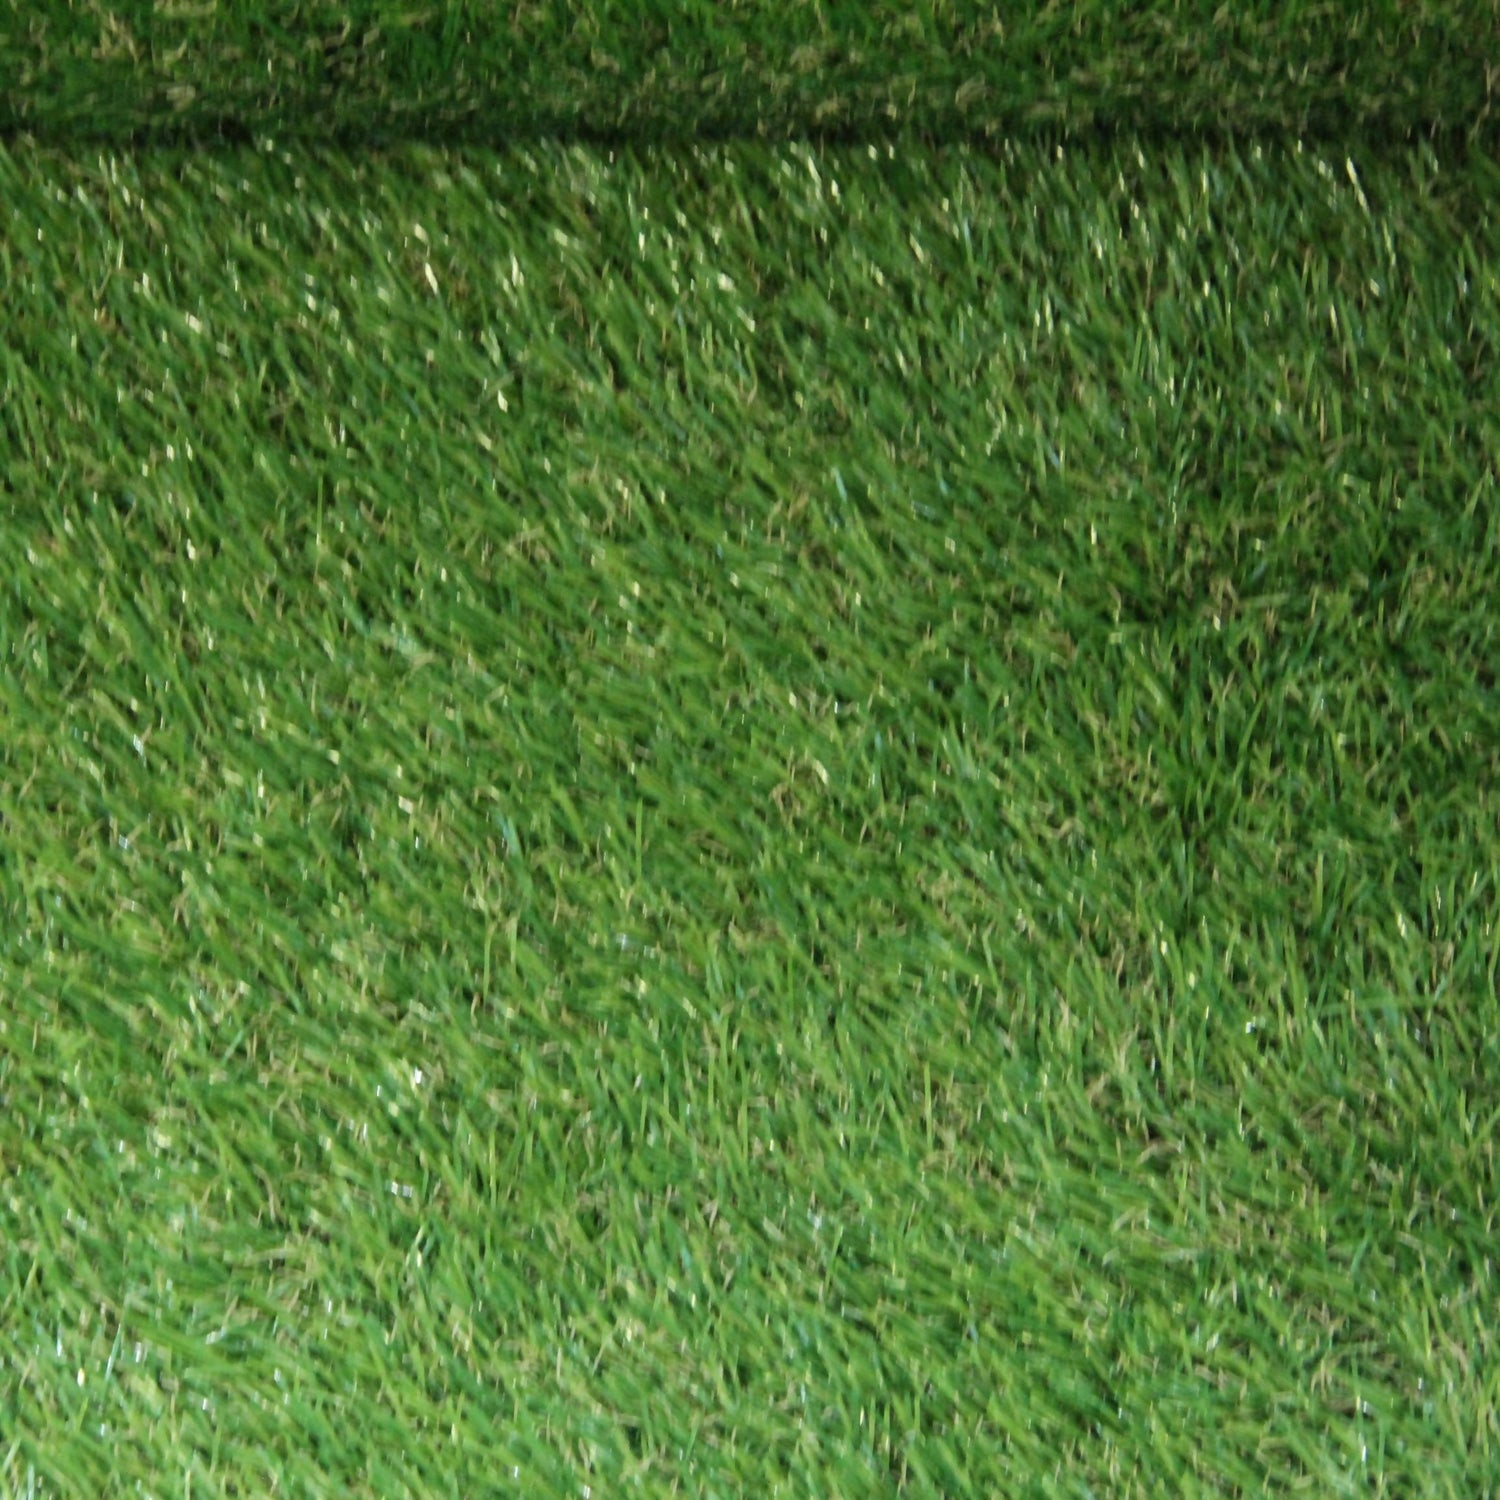 Artificial Grass Carpet (1x2m)